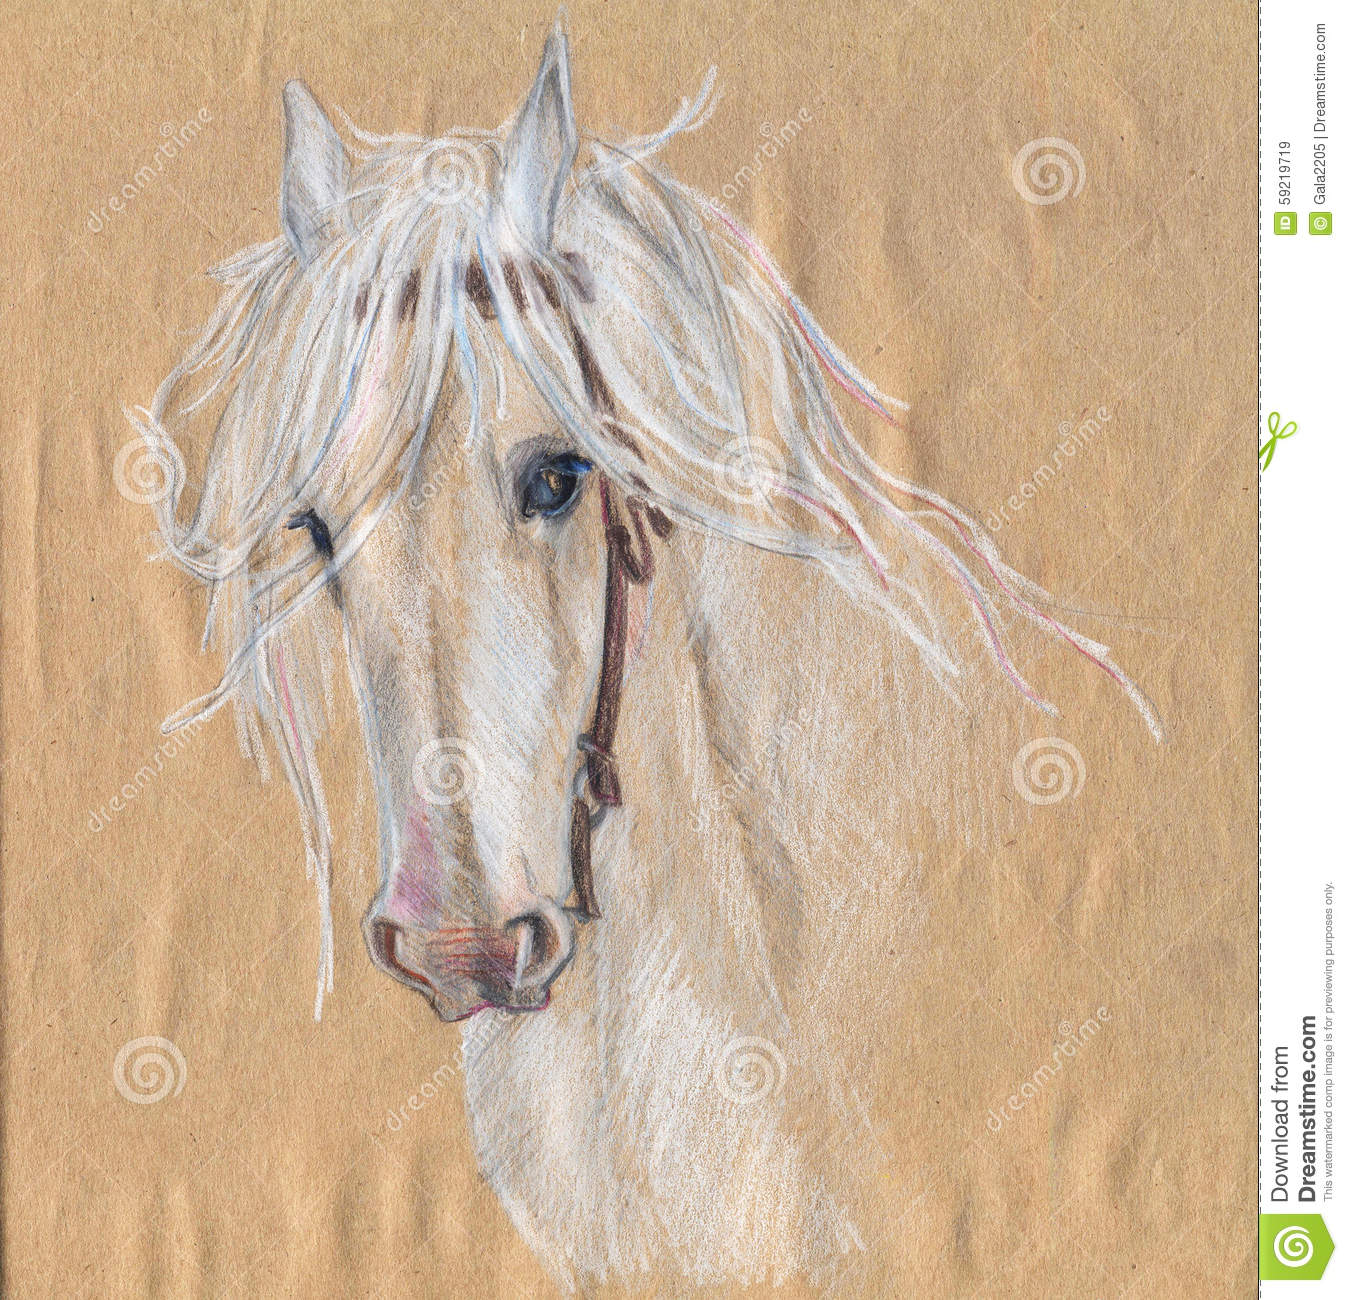 Colored pencil drawing of a white horse beautiful eyes stock illustration image 59219719 for Disegni di cavalli a matita